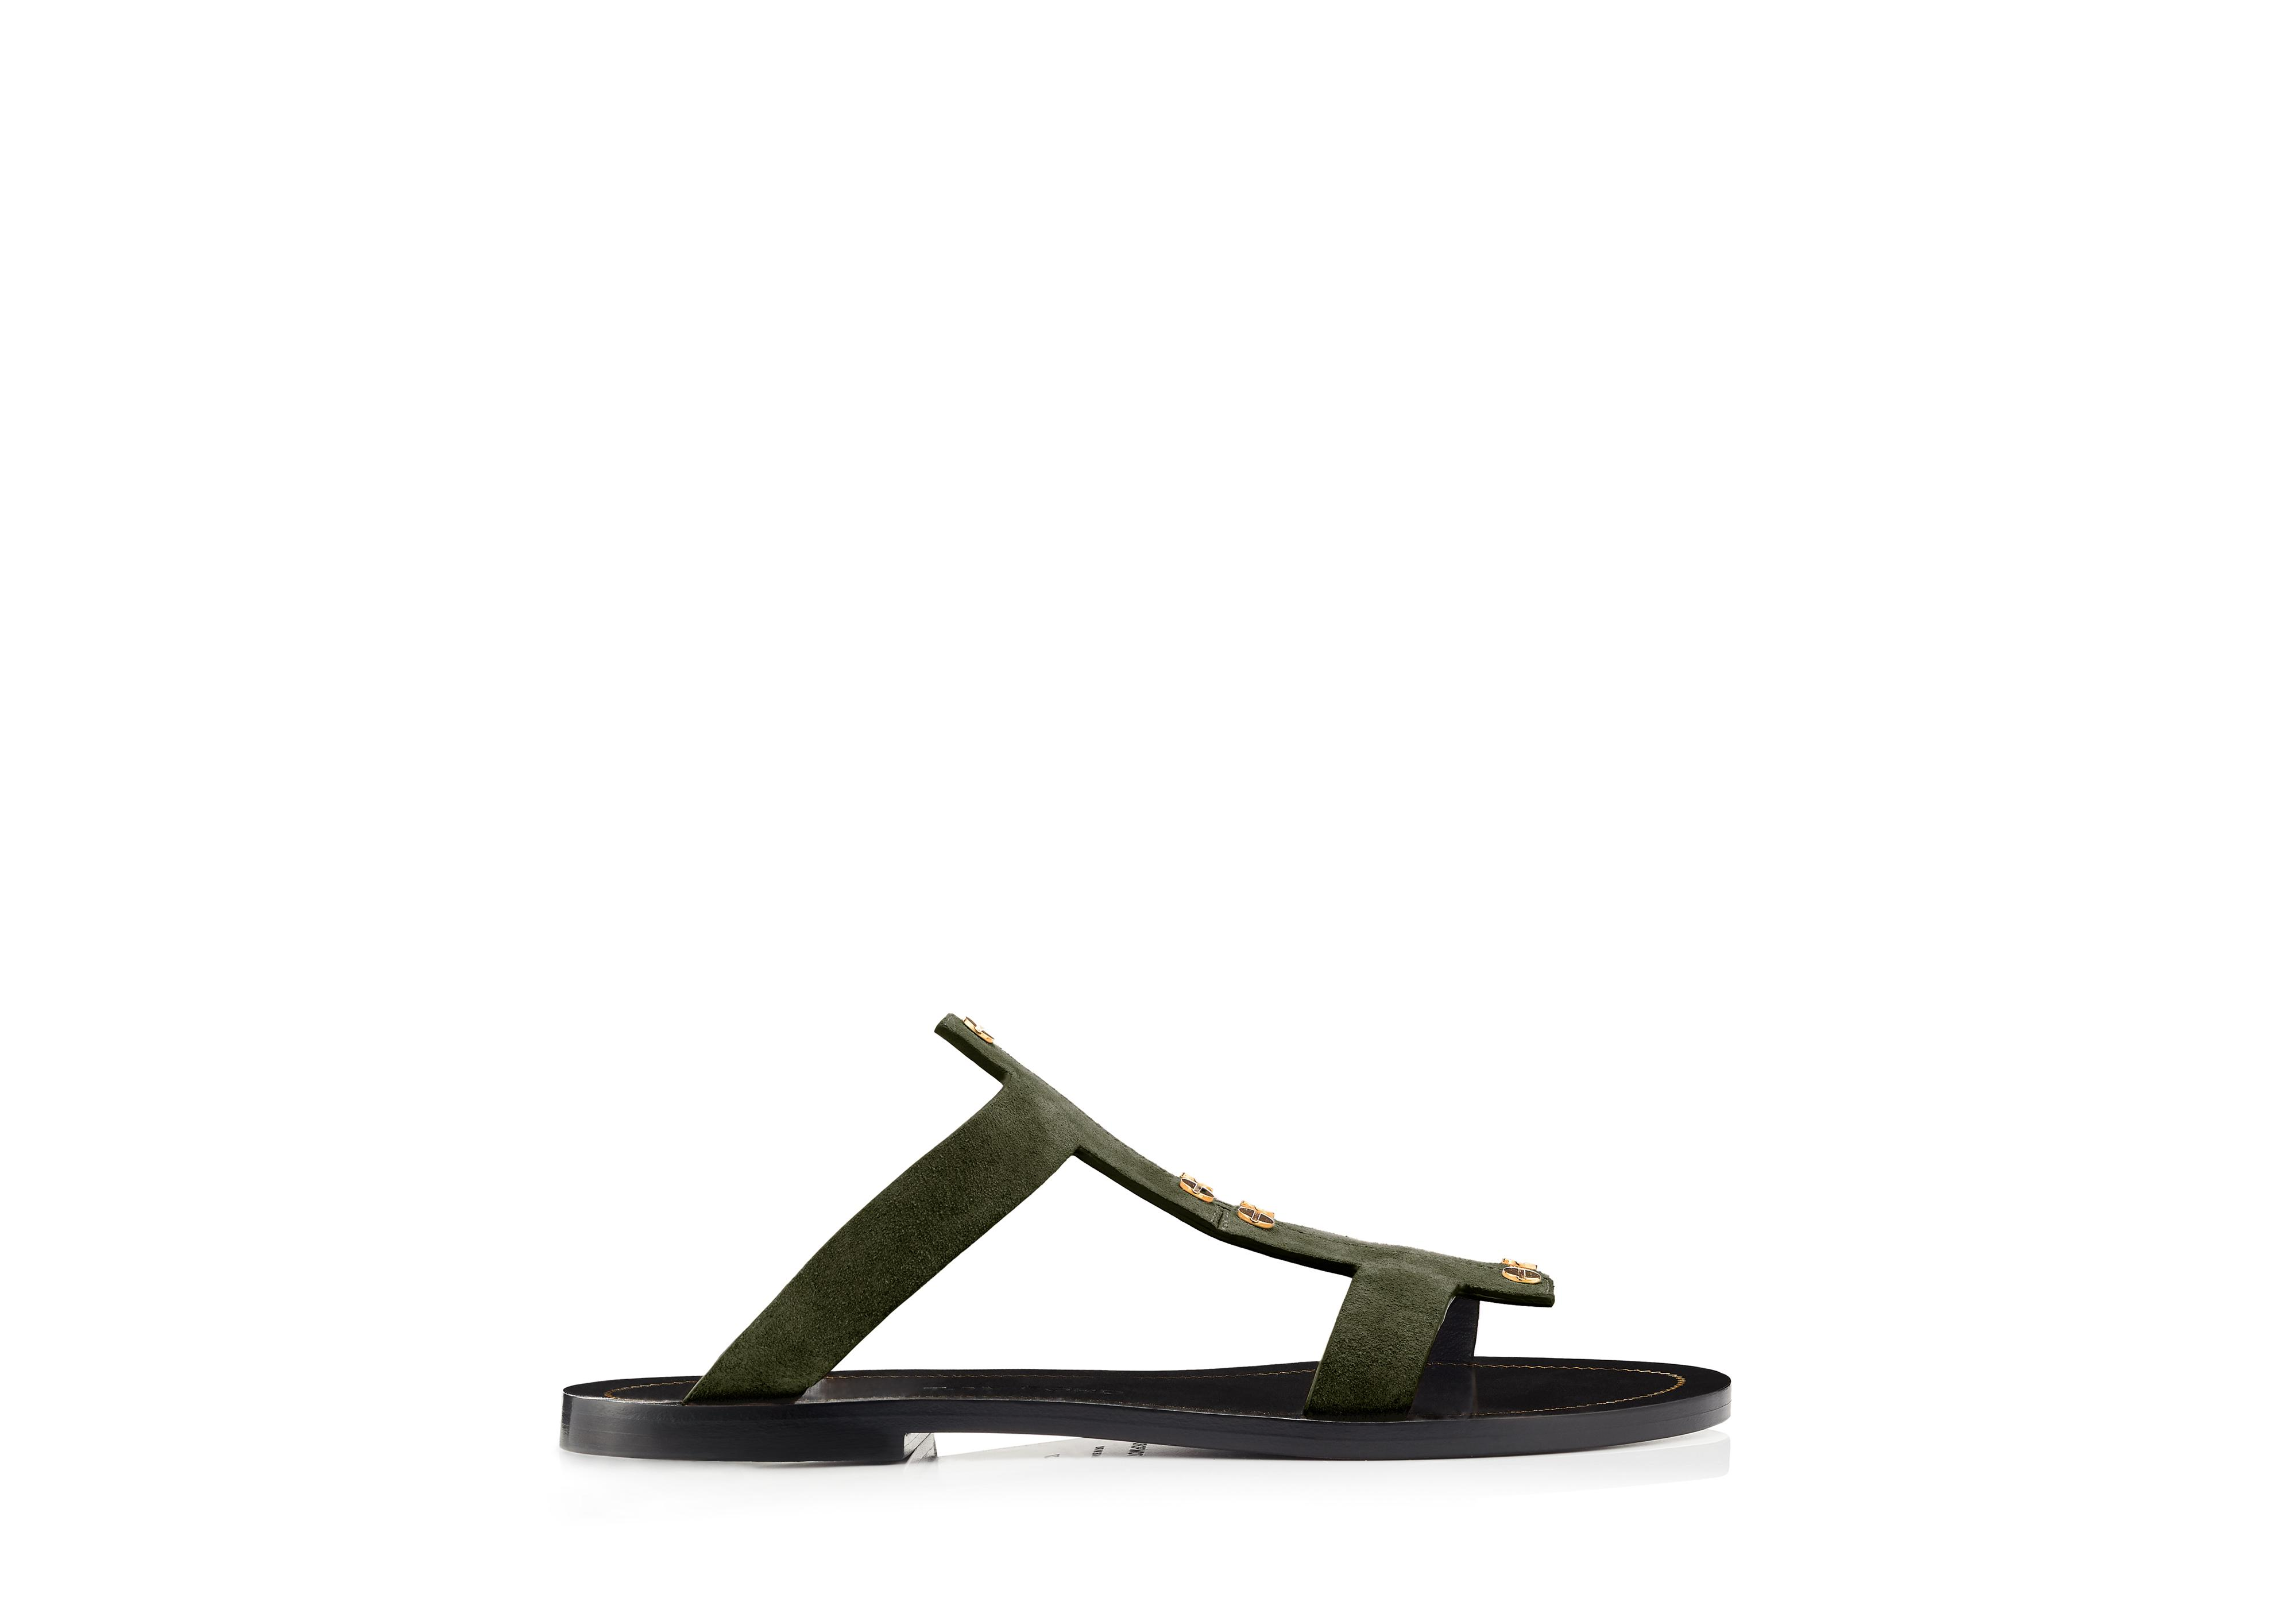 T SCREW FLAT SANDAL A thumbnail